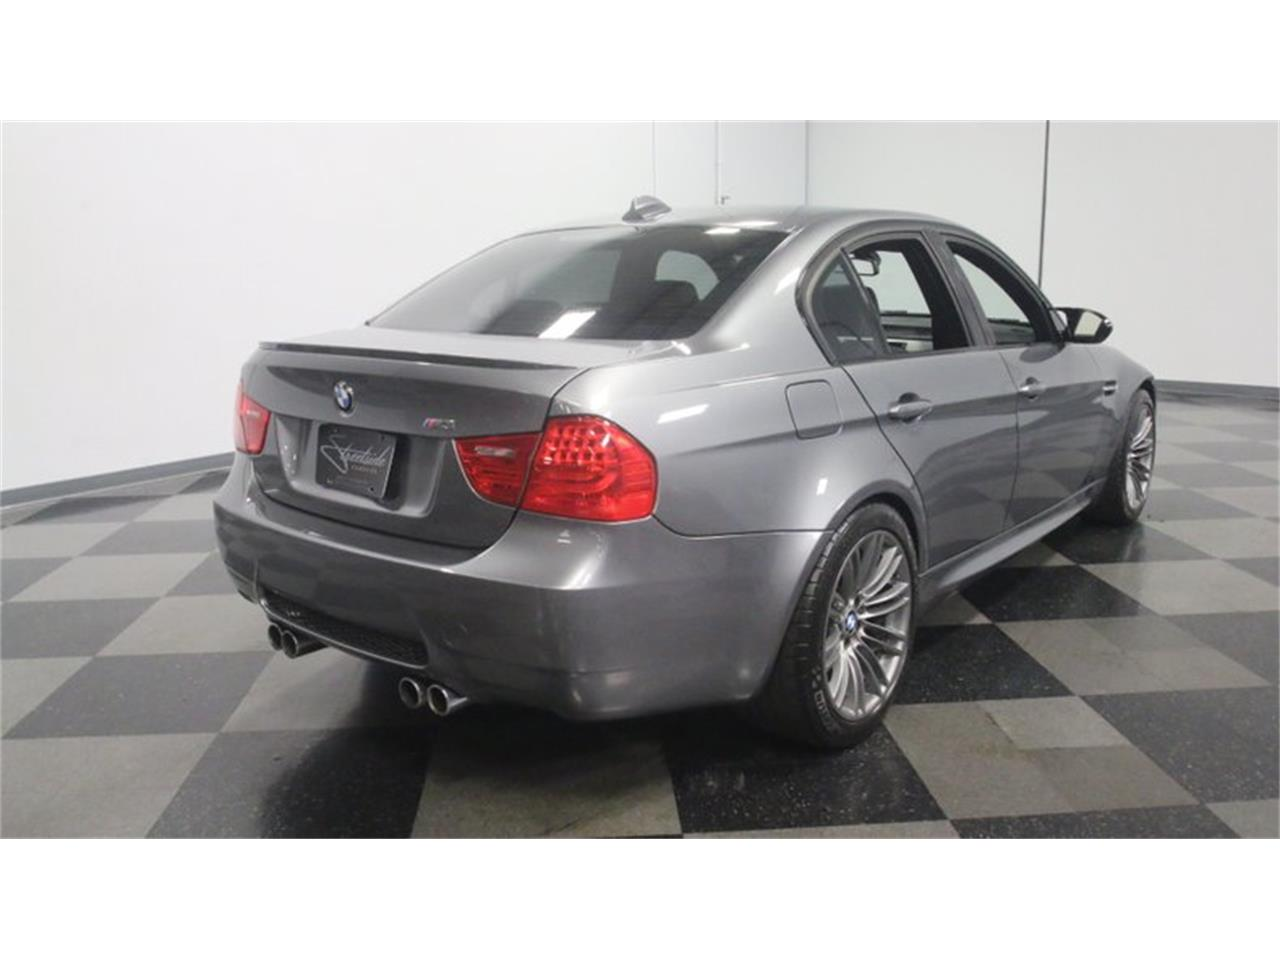 2010 BMW M3 for sale in Lithia Springs, GA – photo 27